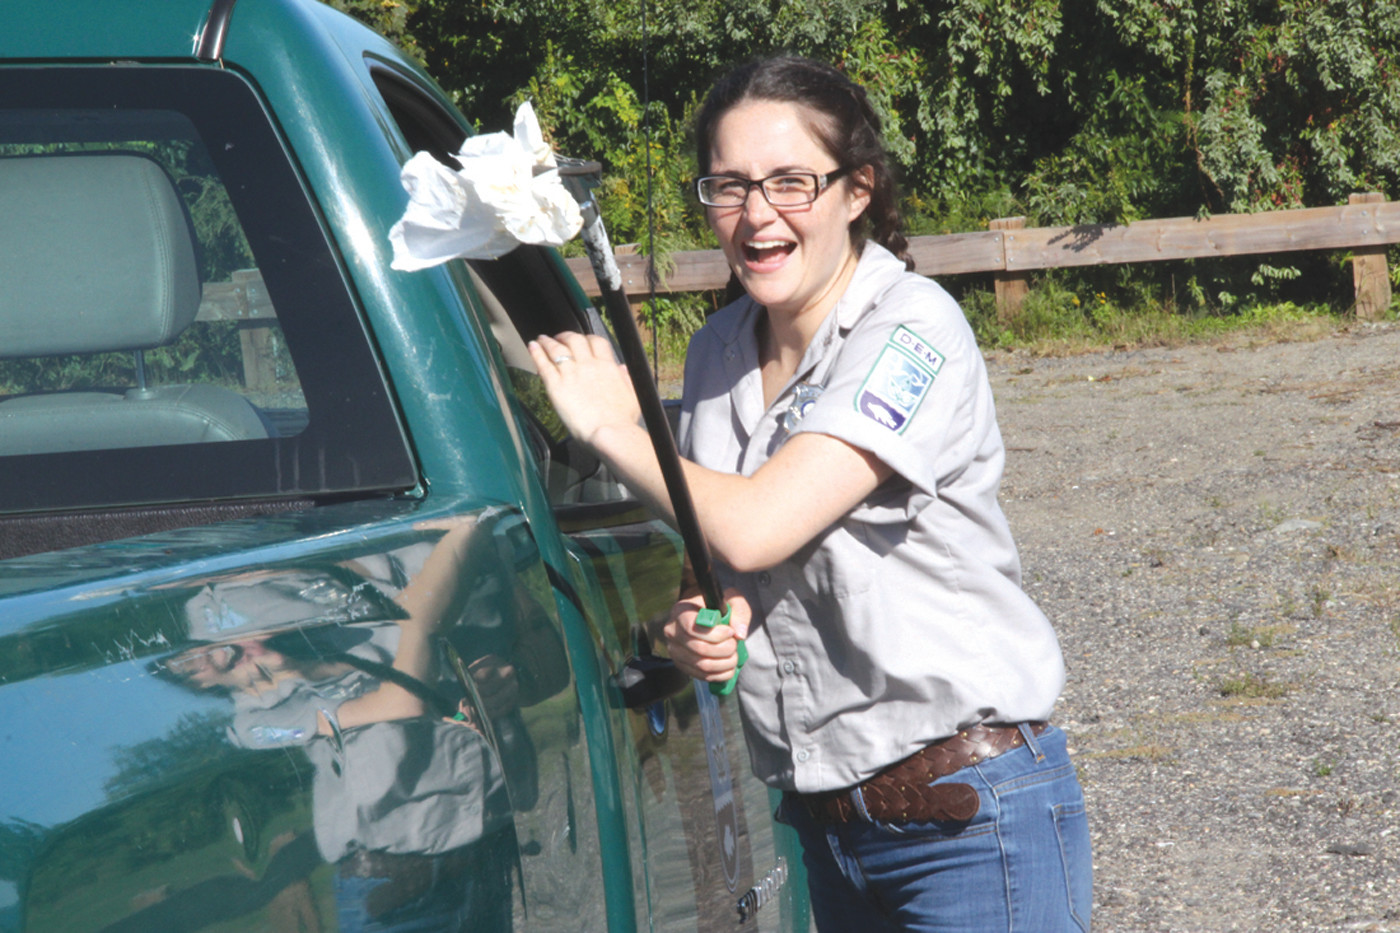 TRASH PATROL: Department of Environmental Management Park Ranger Kailegh Musto nabs a bit of trash Sunday afternoon at Rocky Point. She and two other rangers worked between Goddard and Rocky Point Sunday. They said most of the trash they find is food containers and, generally, they find that younger people are responsible for tossing it.